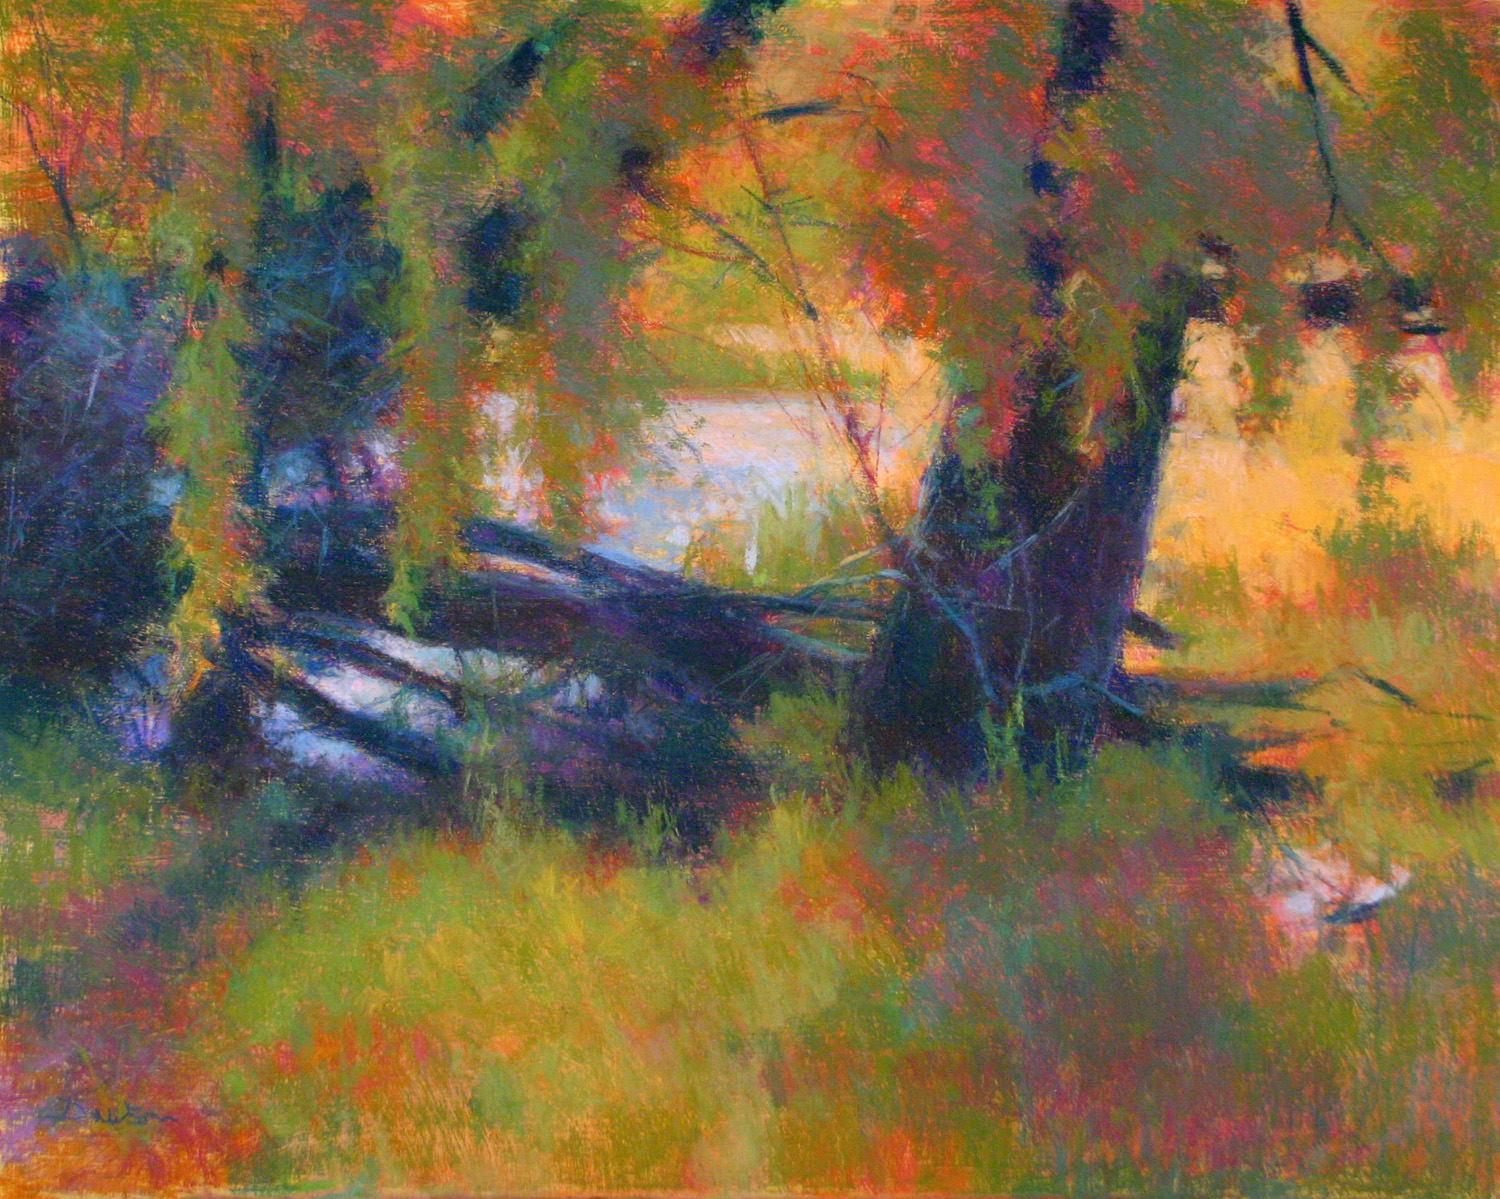 dawson_doug_sanctuary27x34pastel